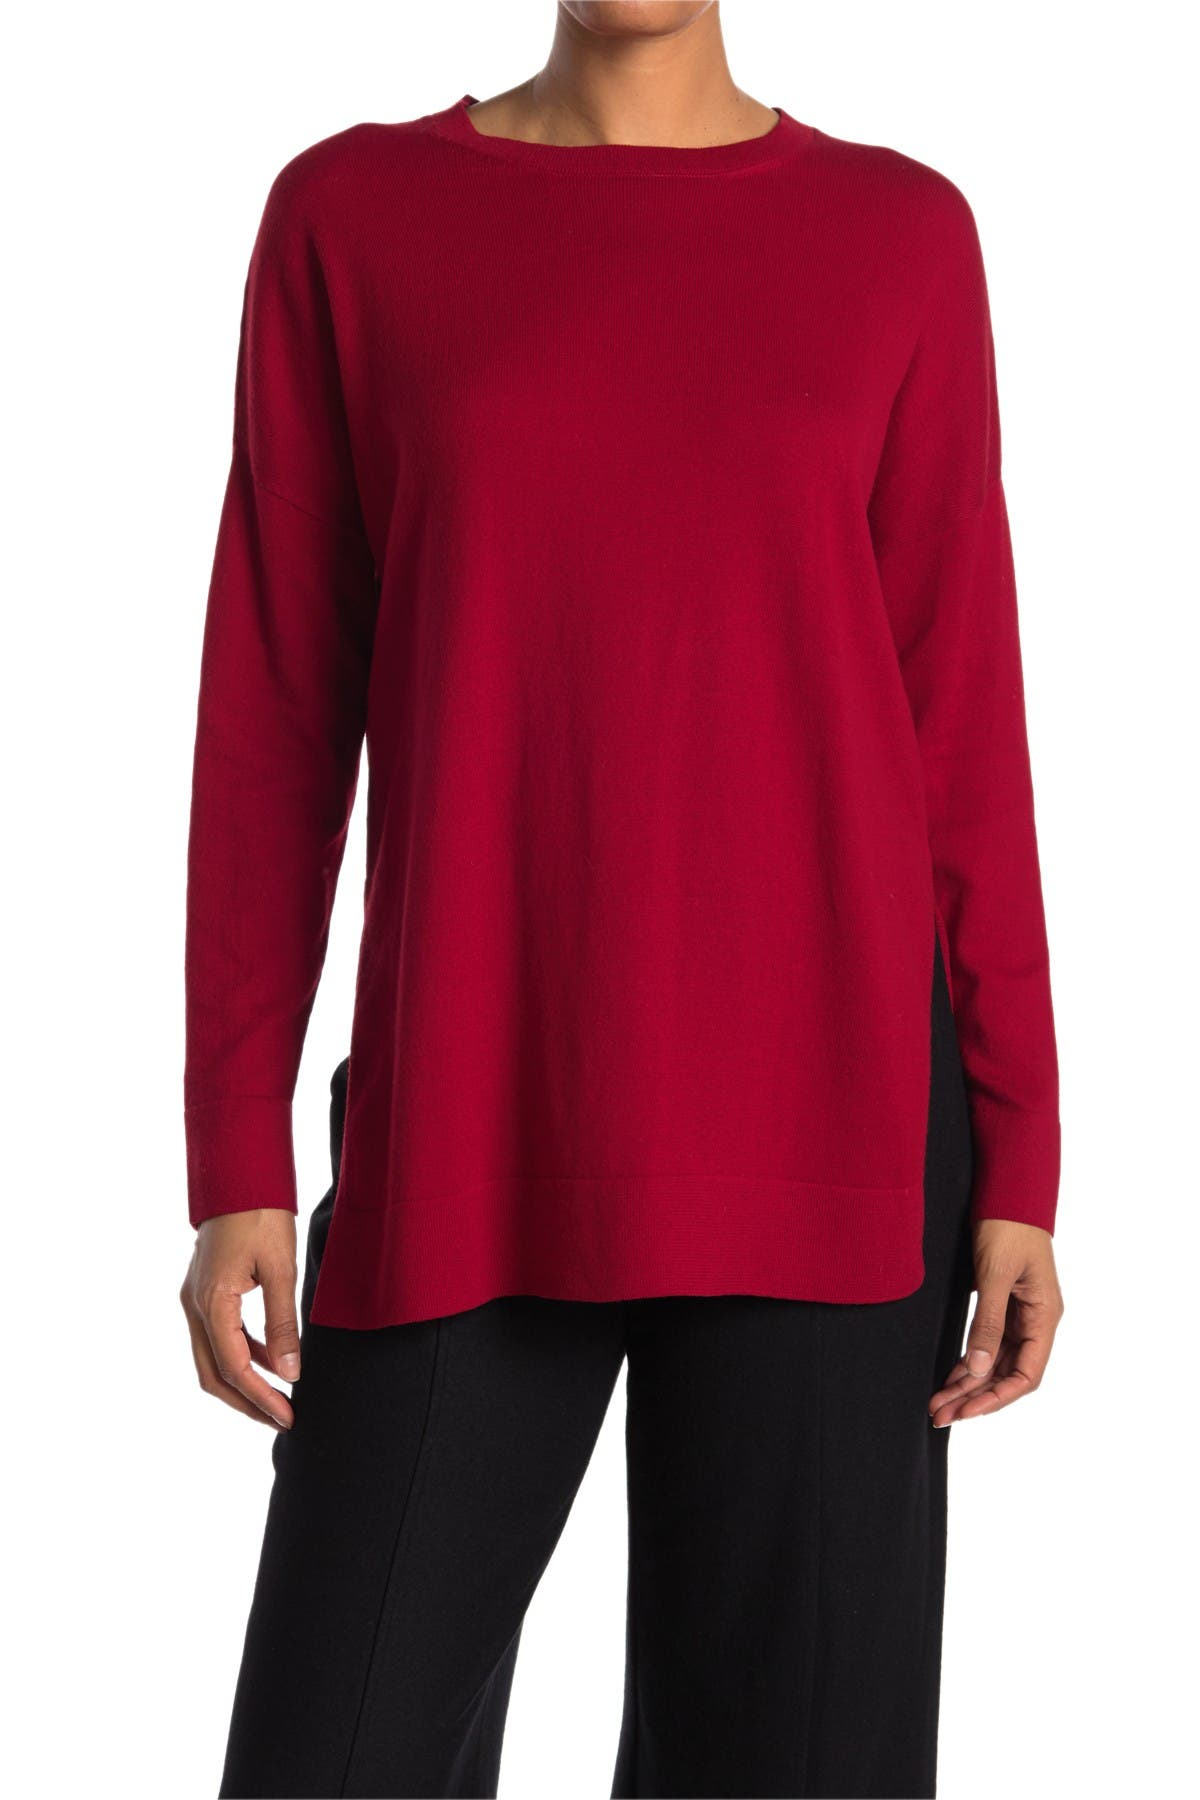 Image of Eileen Fisher Boatneck Boxy Knit Top